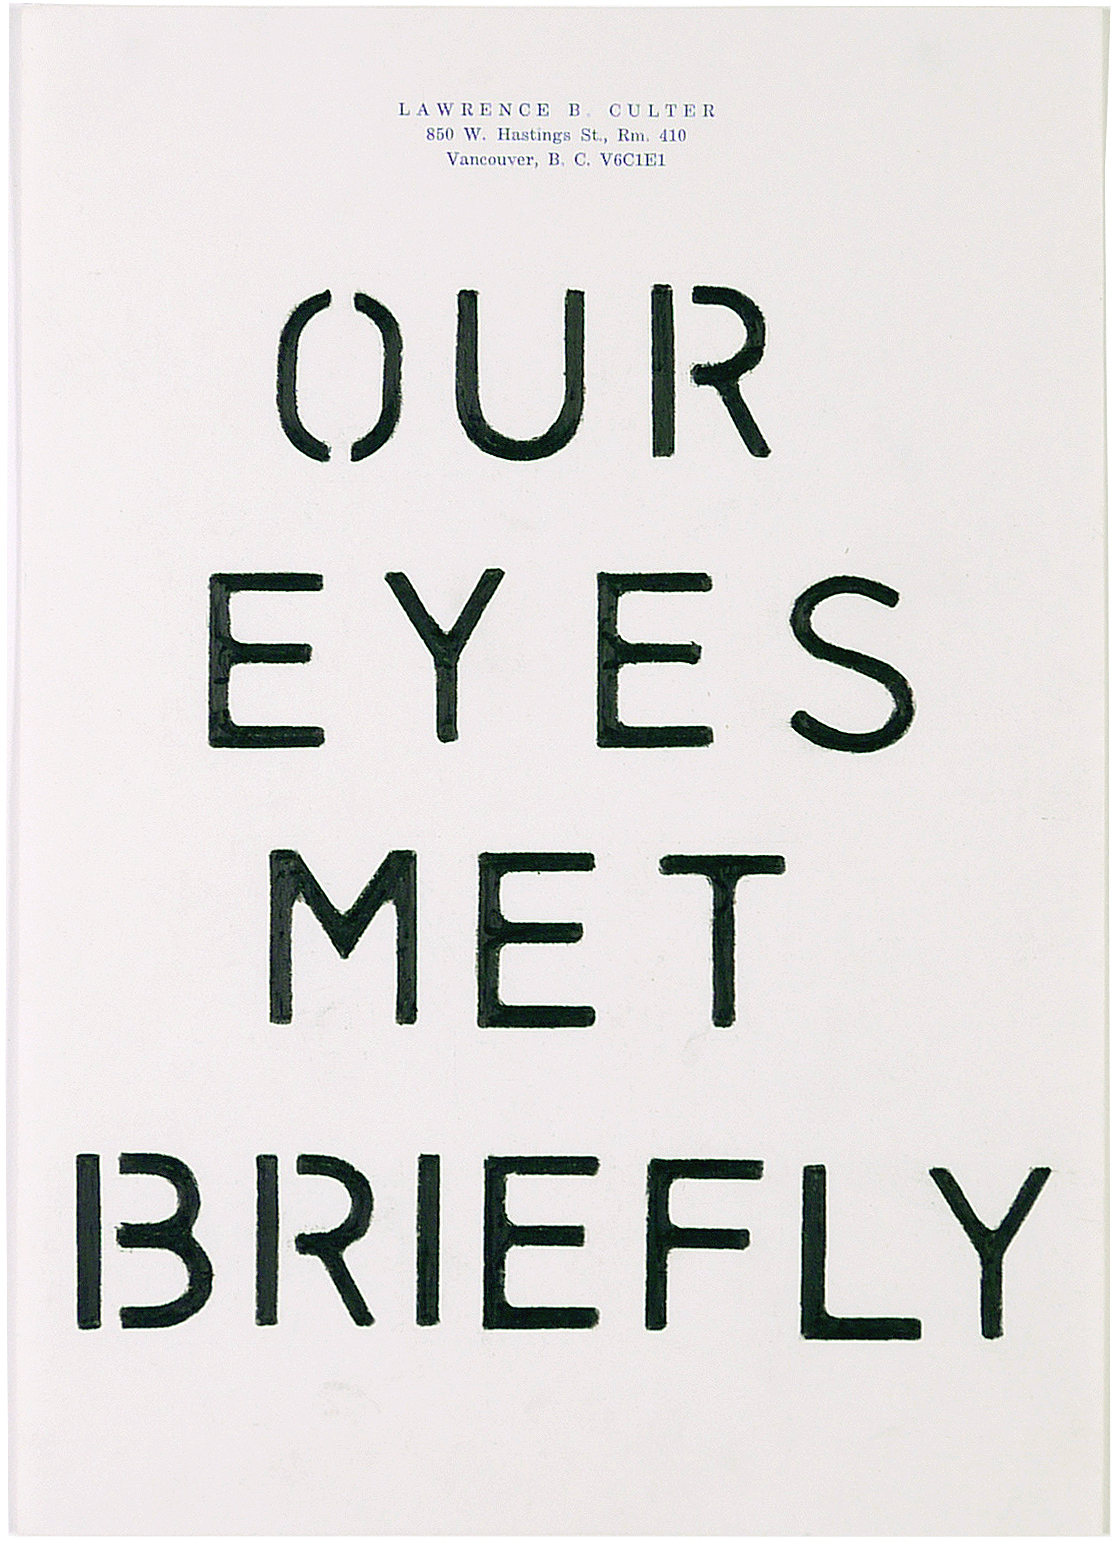 our eyes met briefly  7.25 x 10.5 inches  pencil crayon on paper